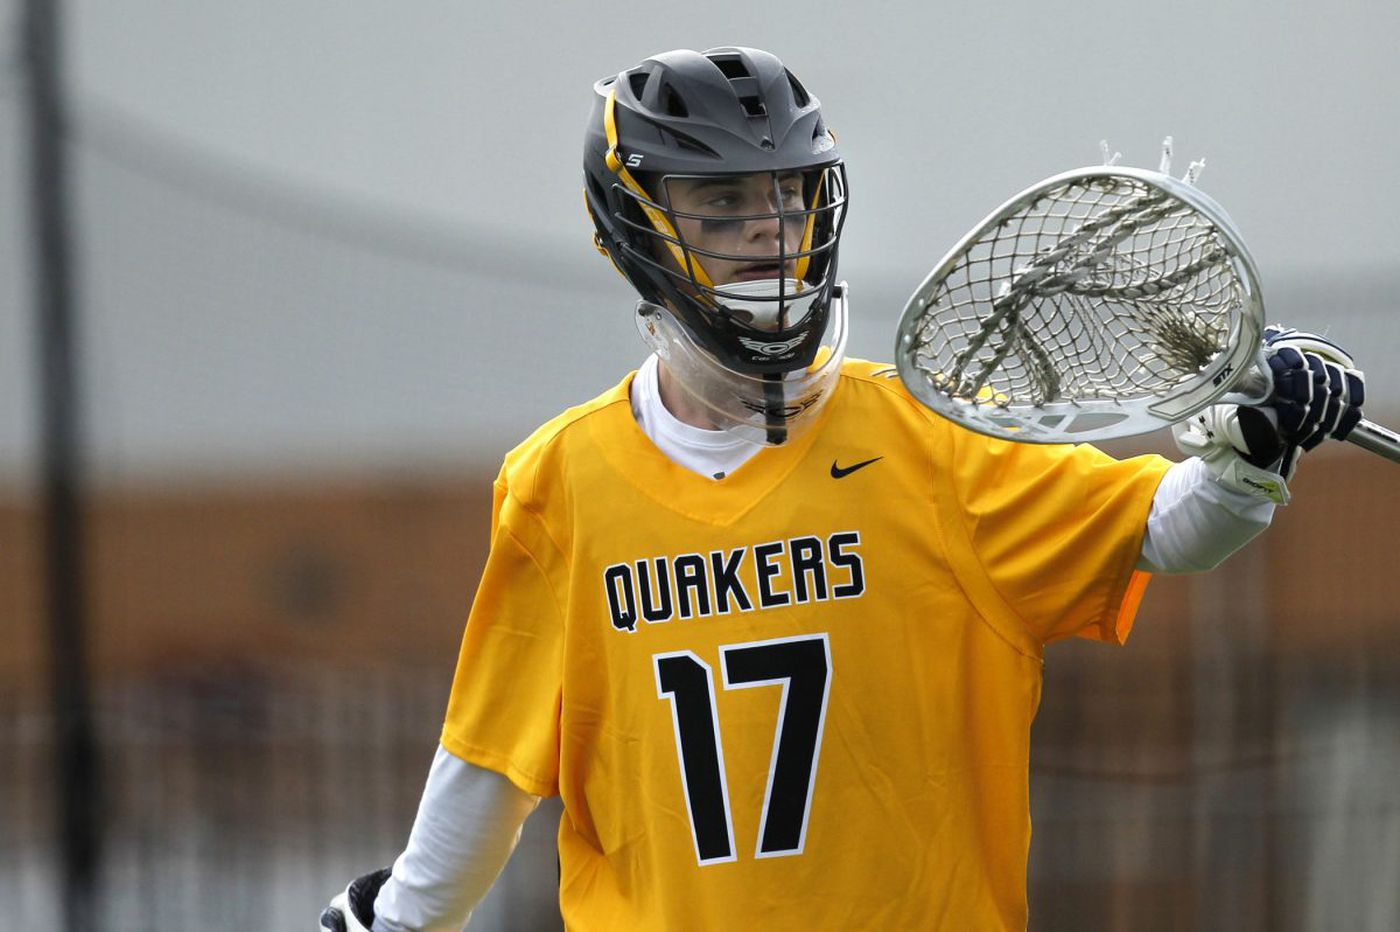 Moorestown boys' lacrosse falls in Group 3 state championship